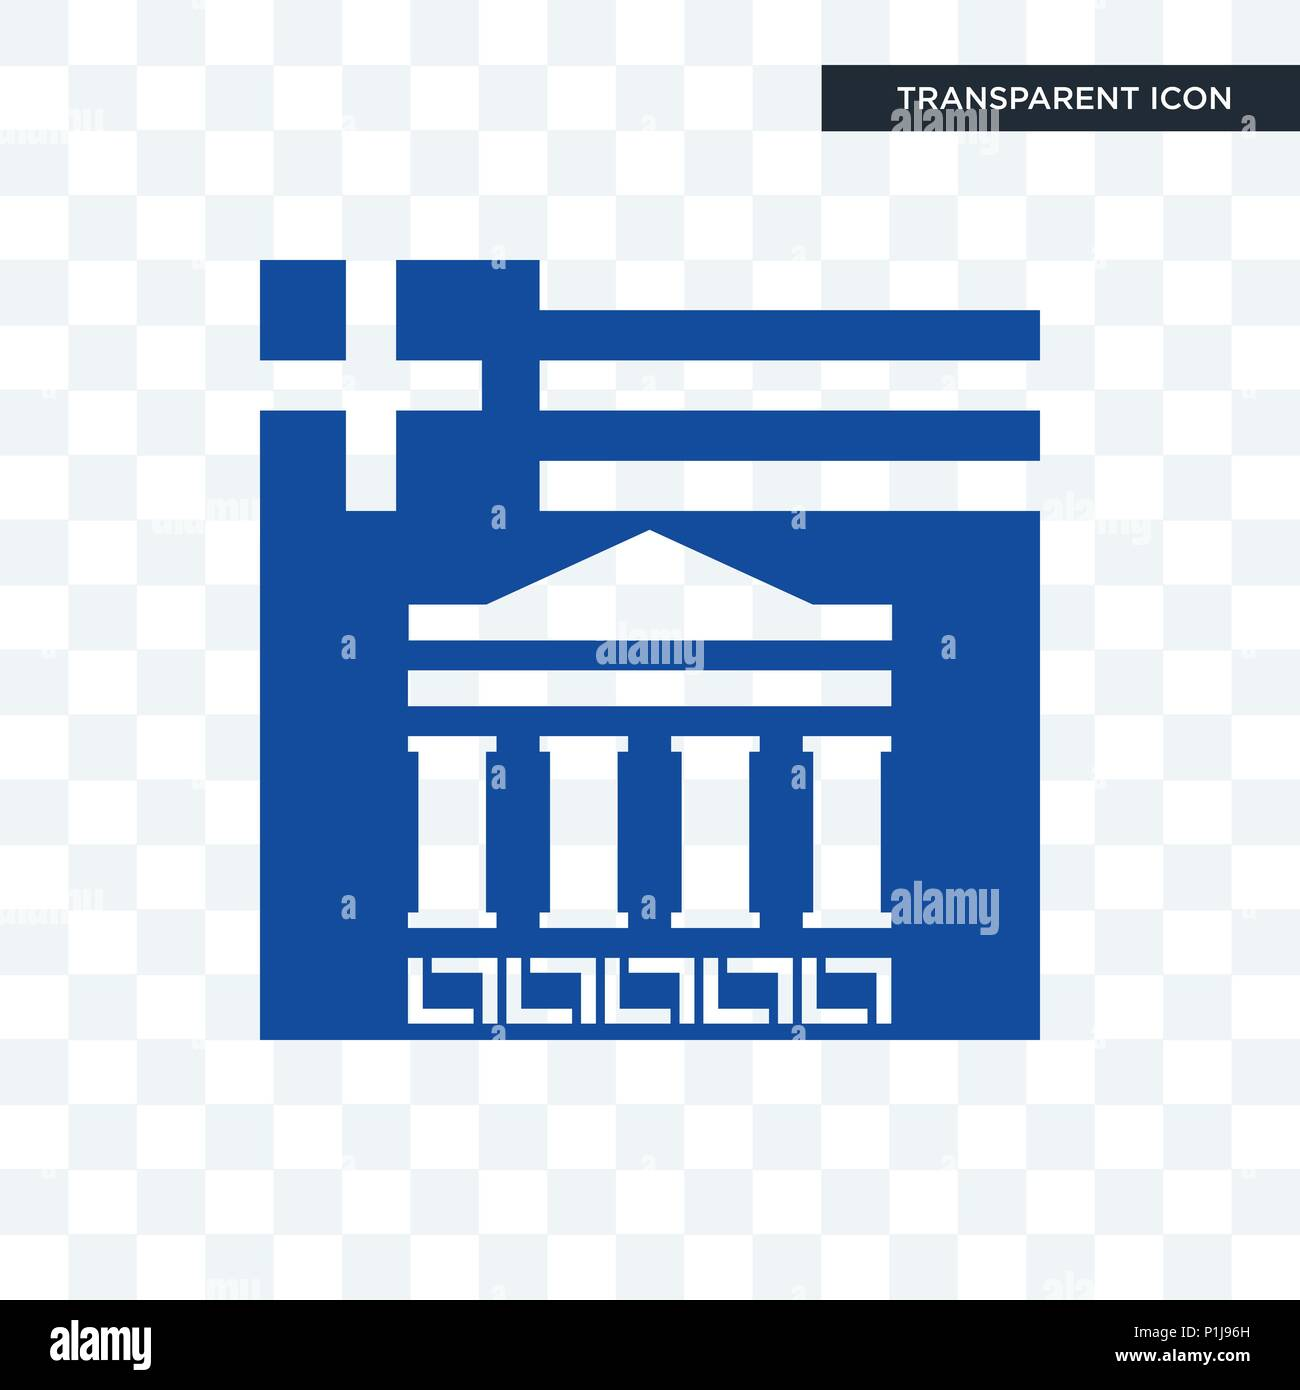 greek vector icon isolated on transparent background, greek logo concept - Stock Image